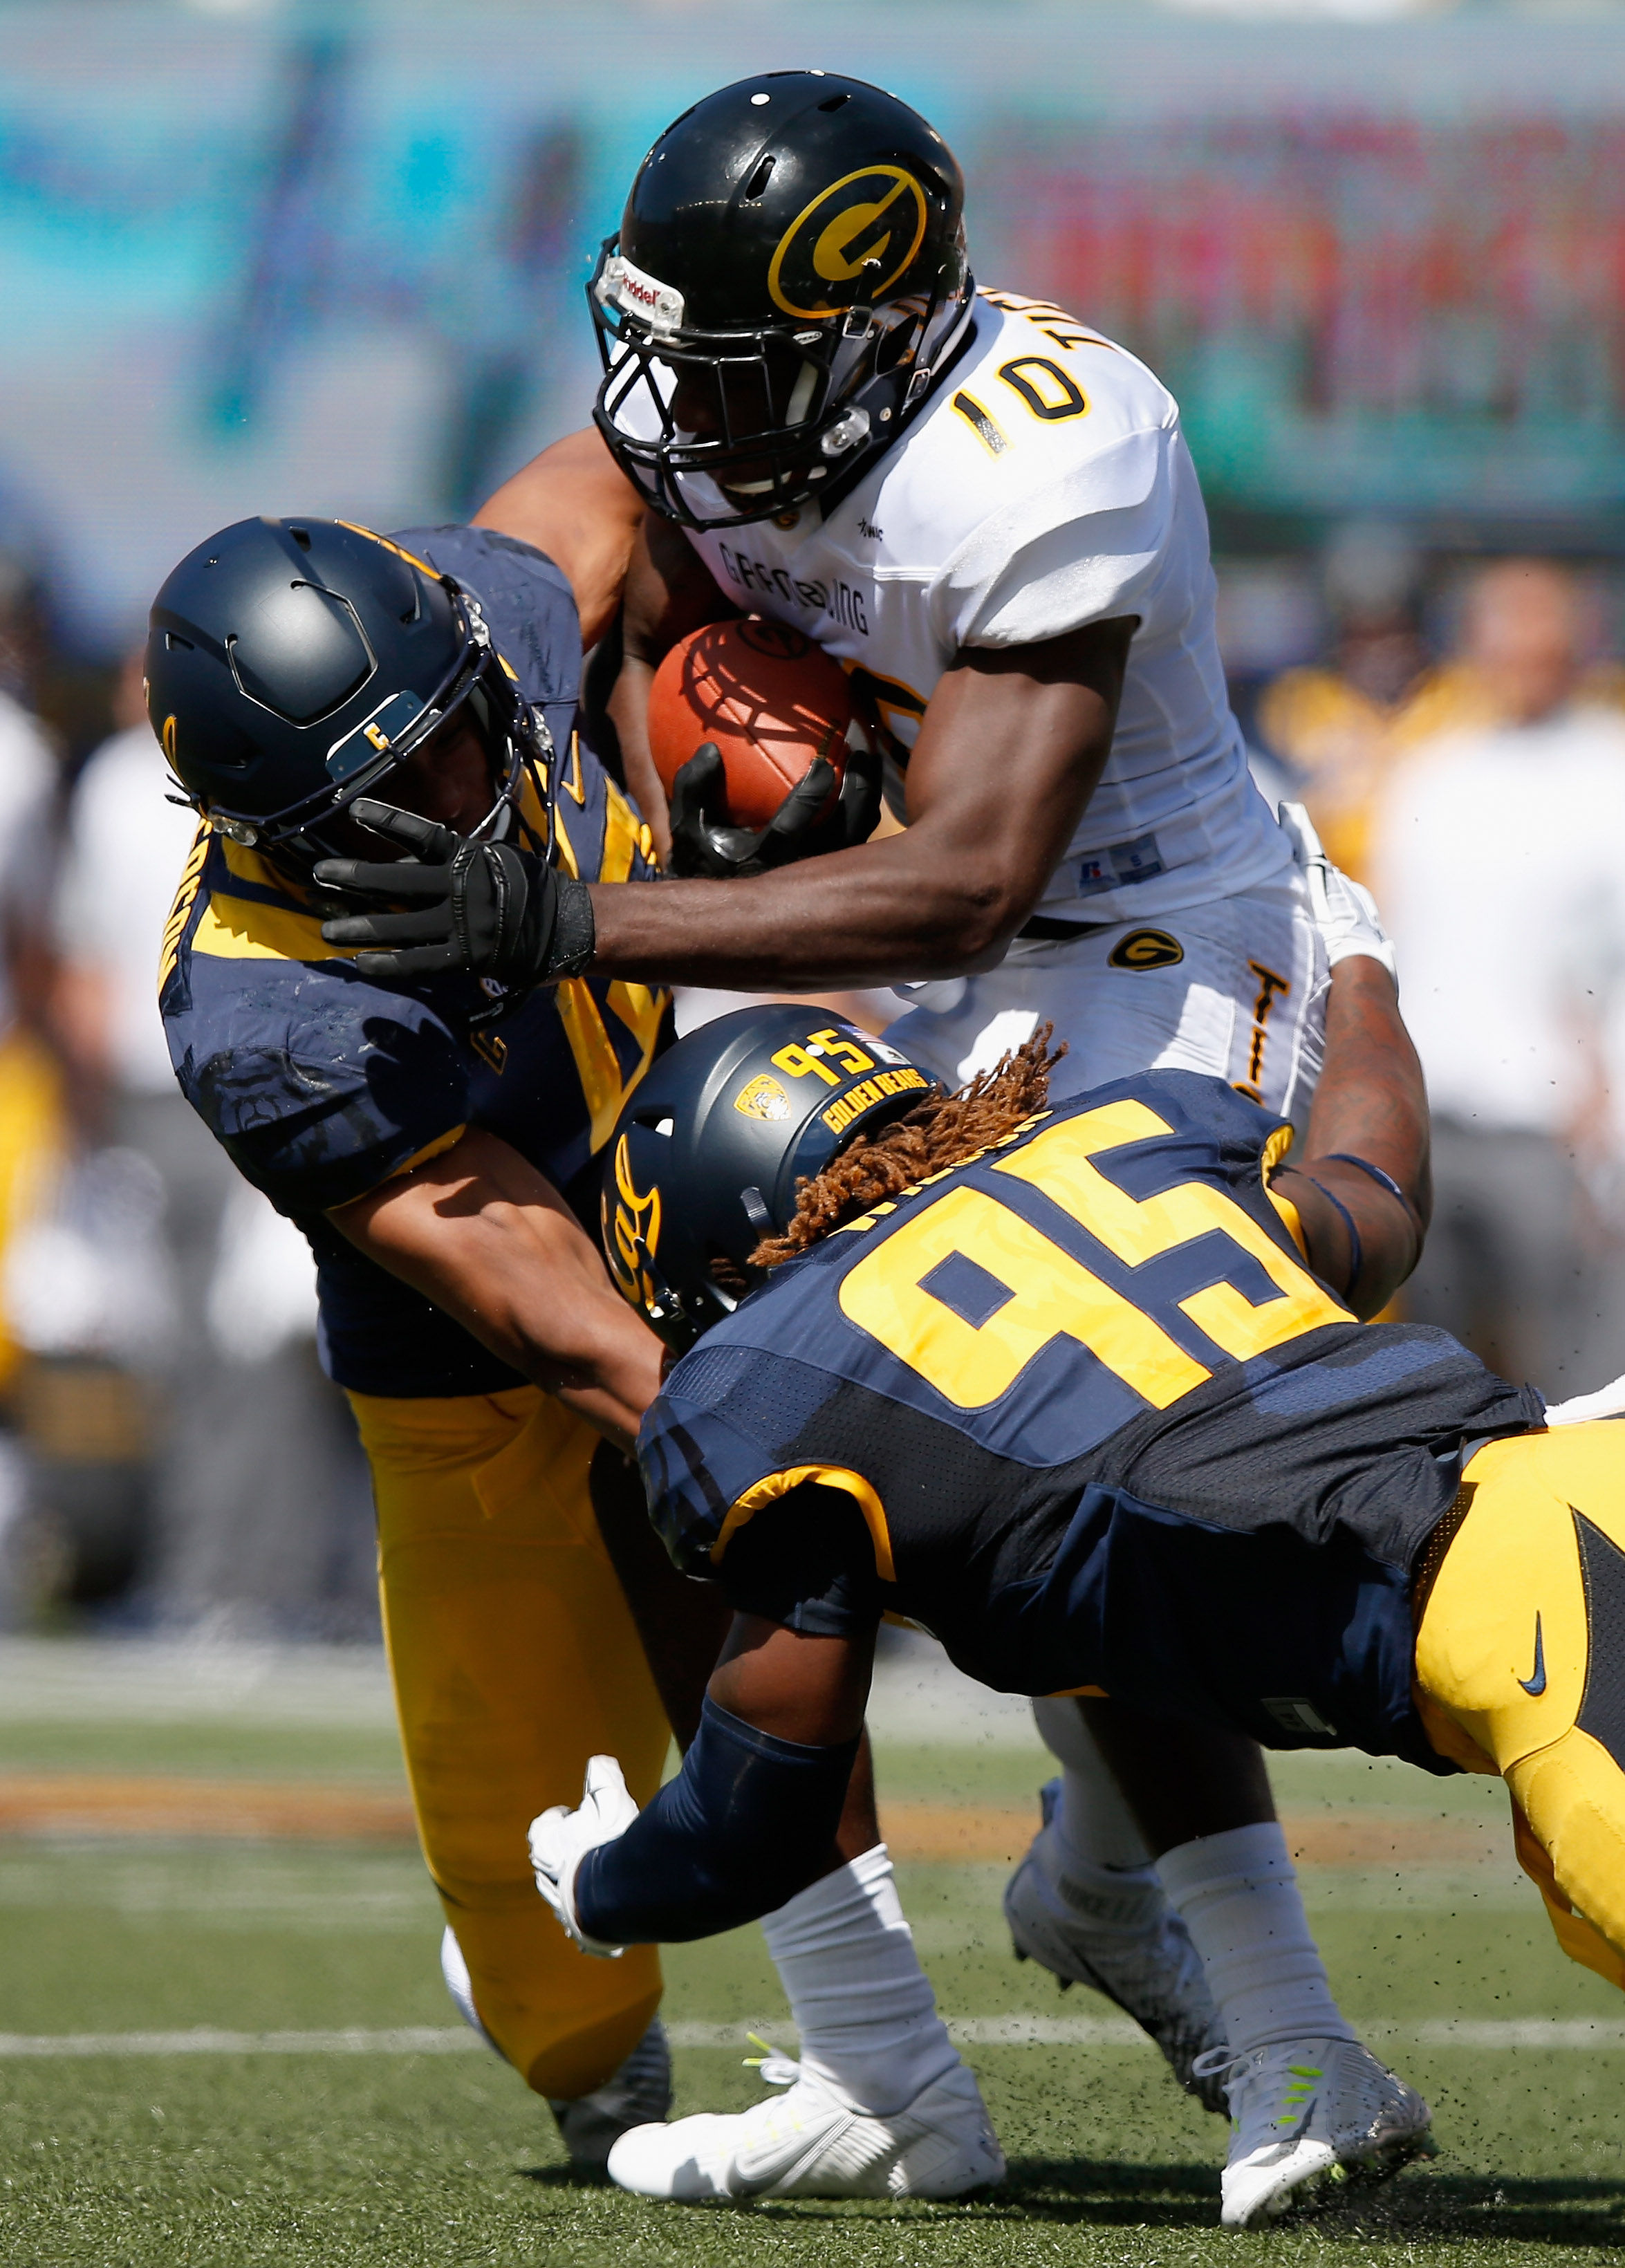 Grambling State wide receiver Chad Williams, shown here getting tackled in a game against Cal, played well against tougher opponents. (Getty Images)